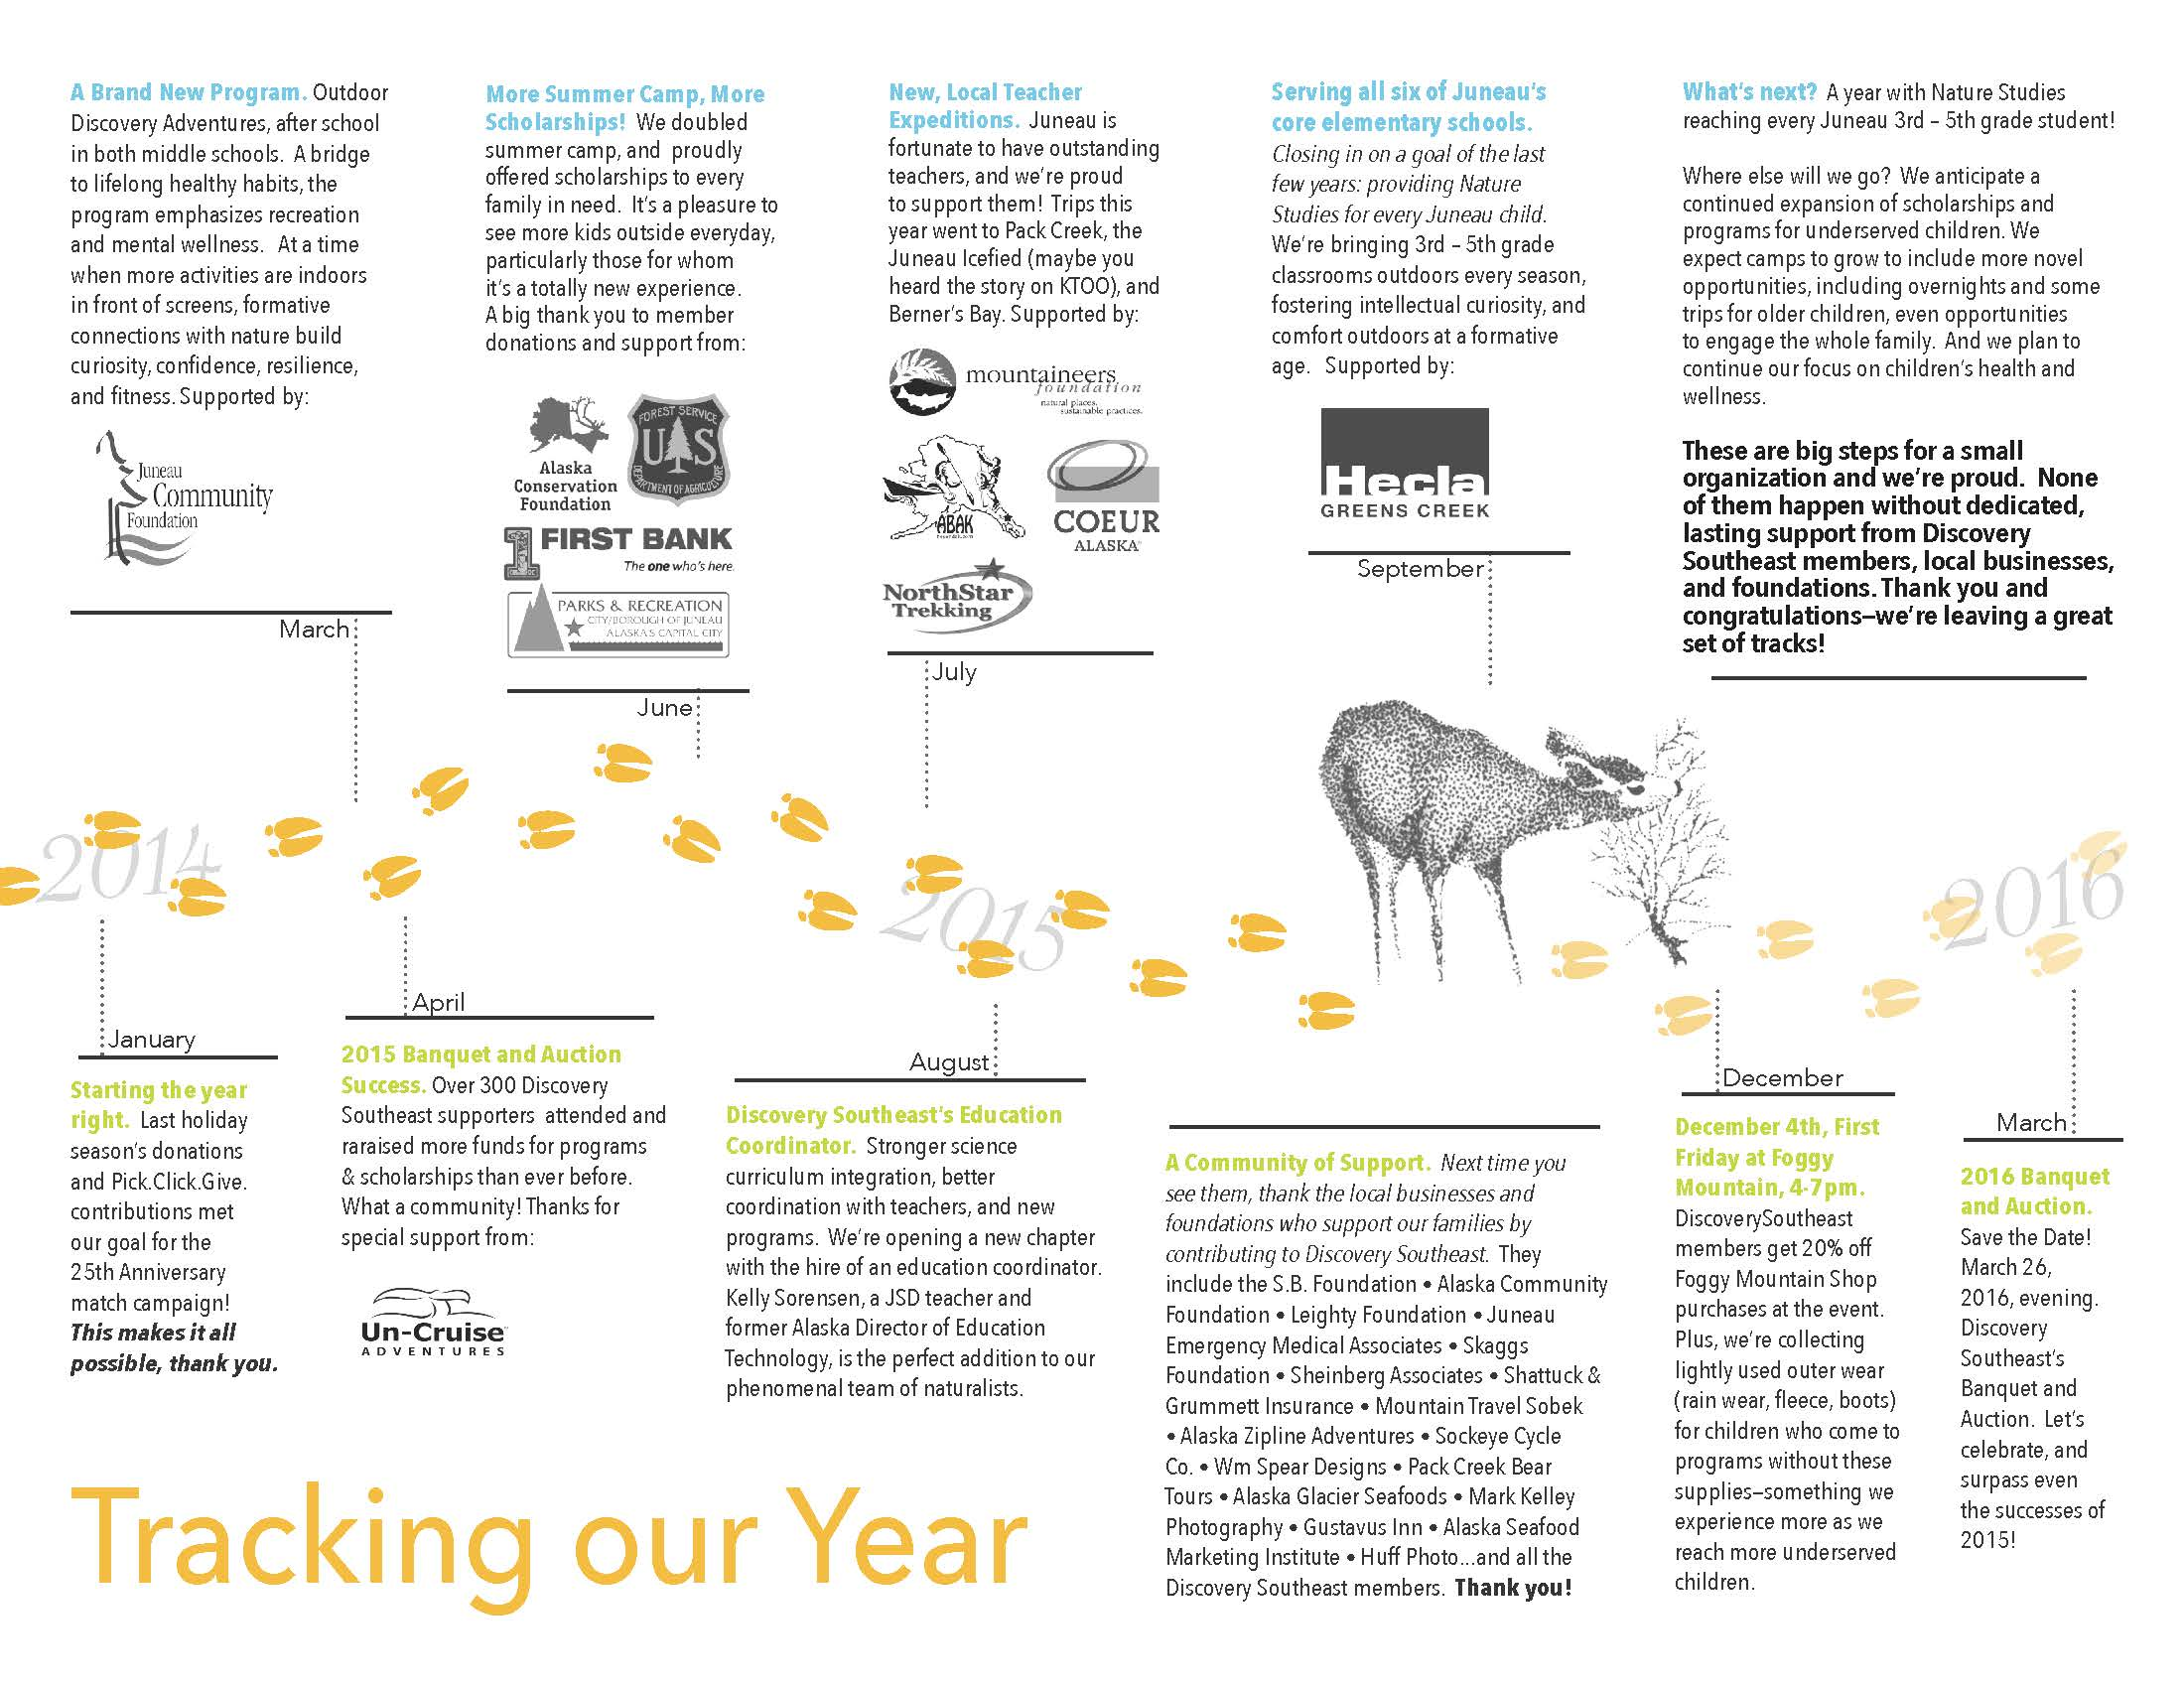 2015 Annual Report timeline